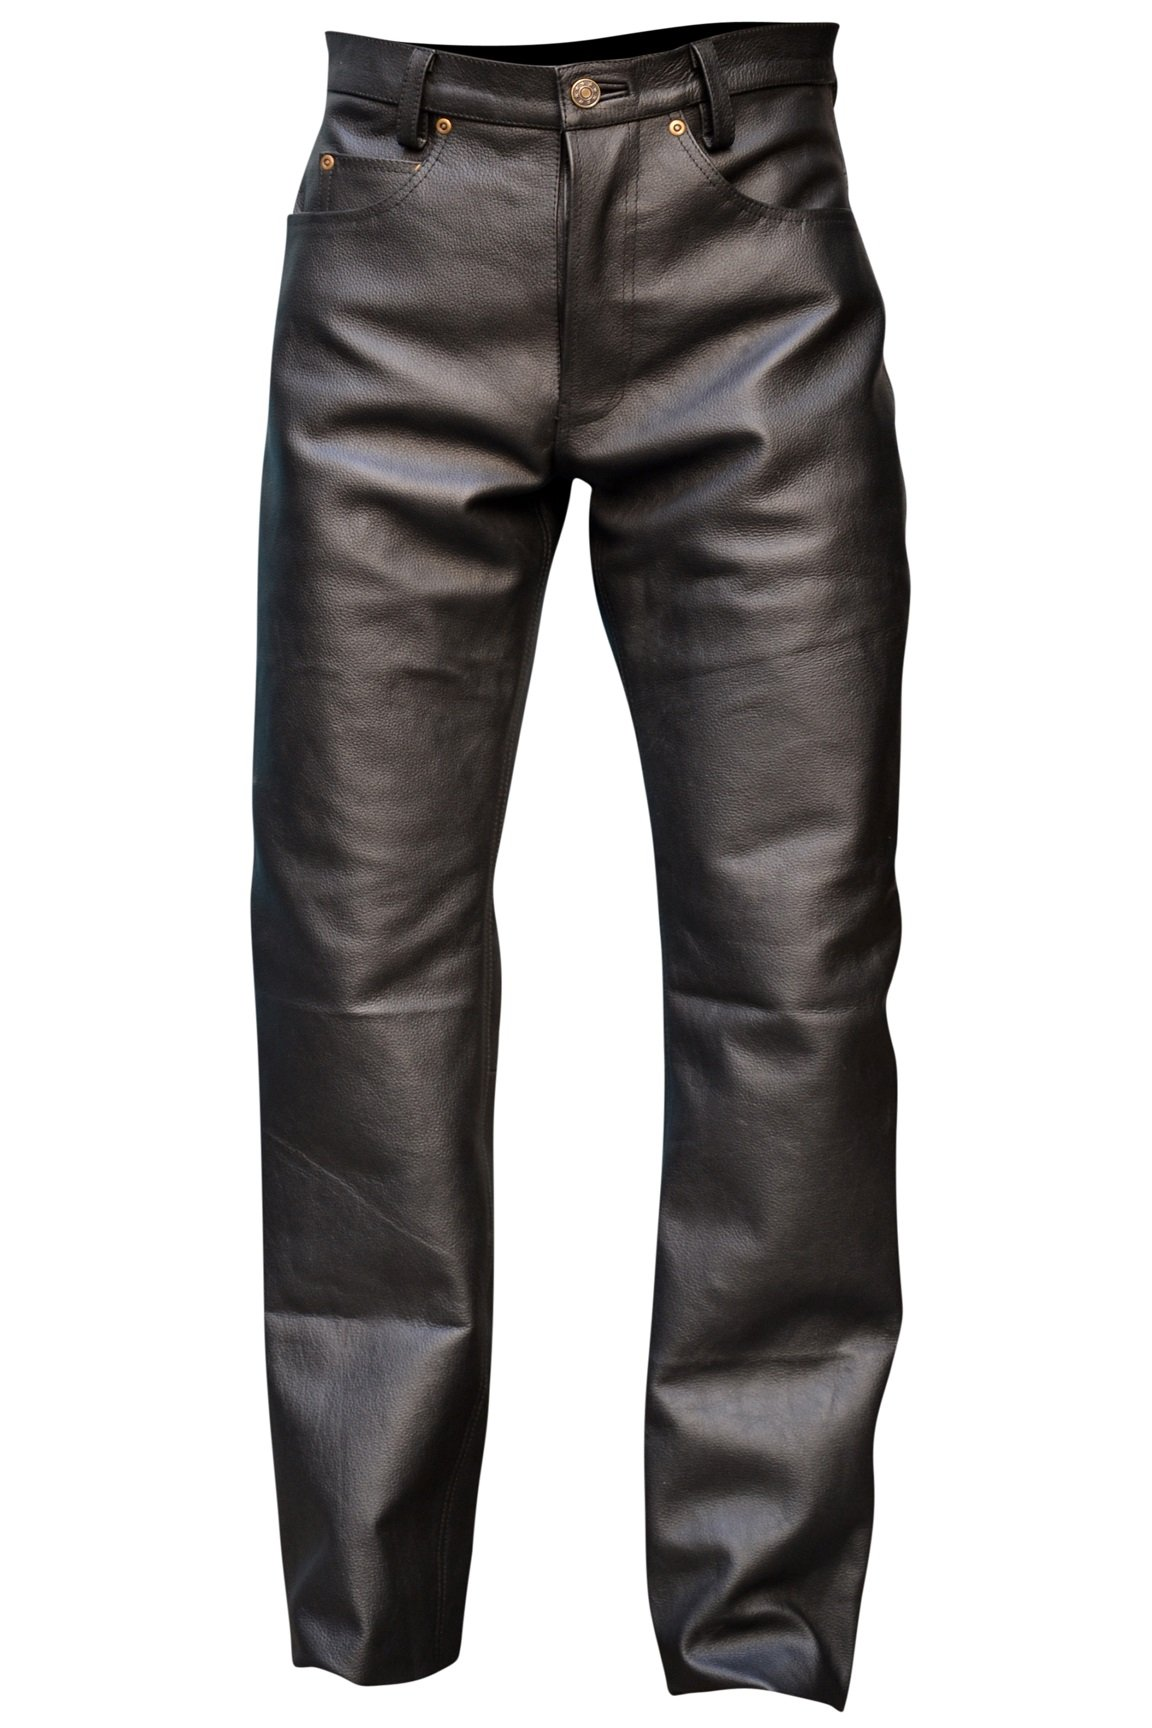 Mens Genuine Leather Pant 5 Pockets Jeans Style Button Fly Model (42 Inch Waist)